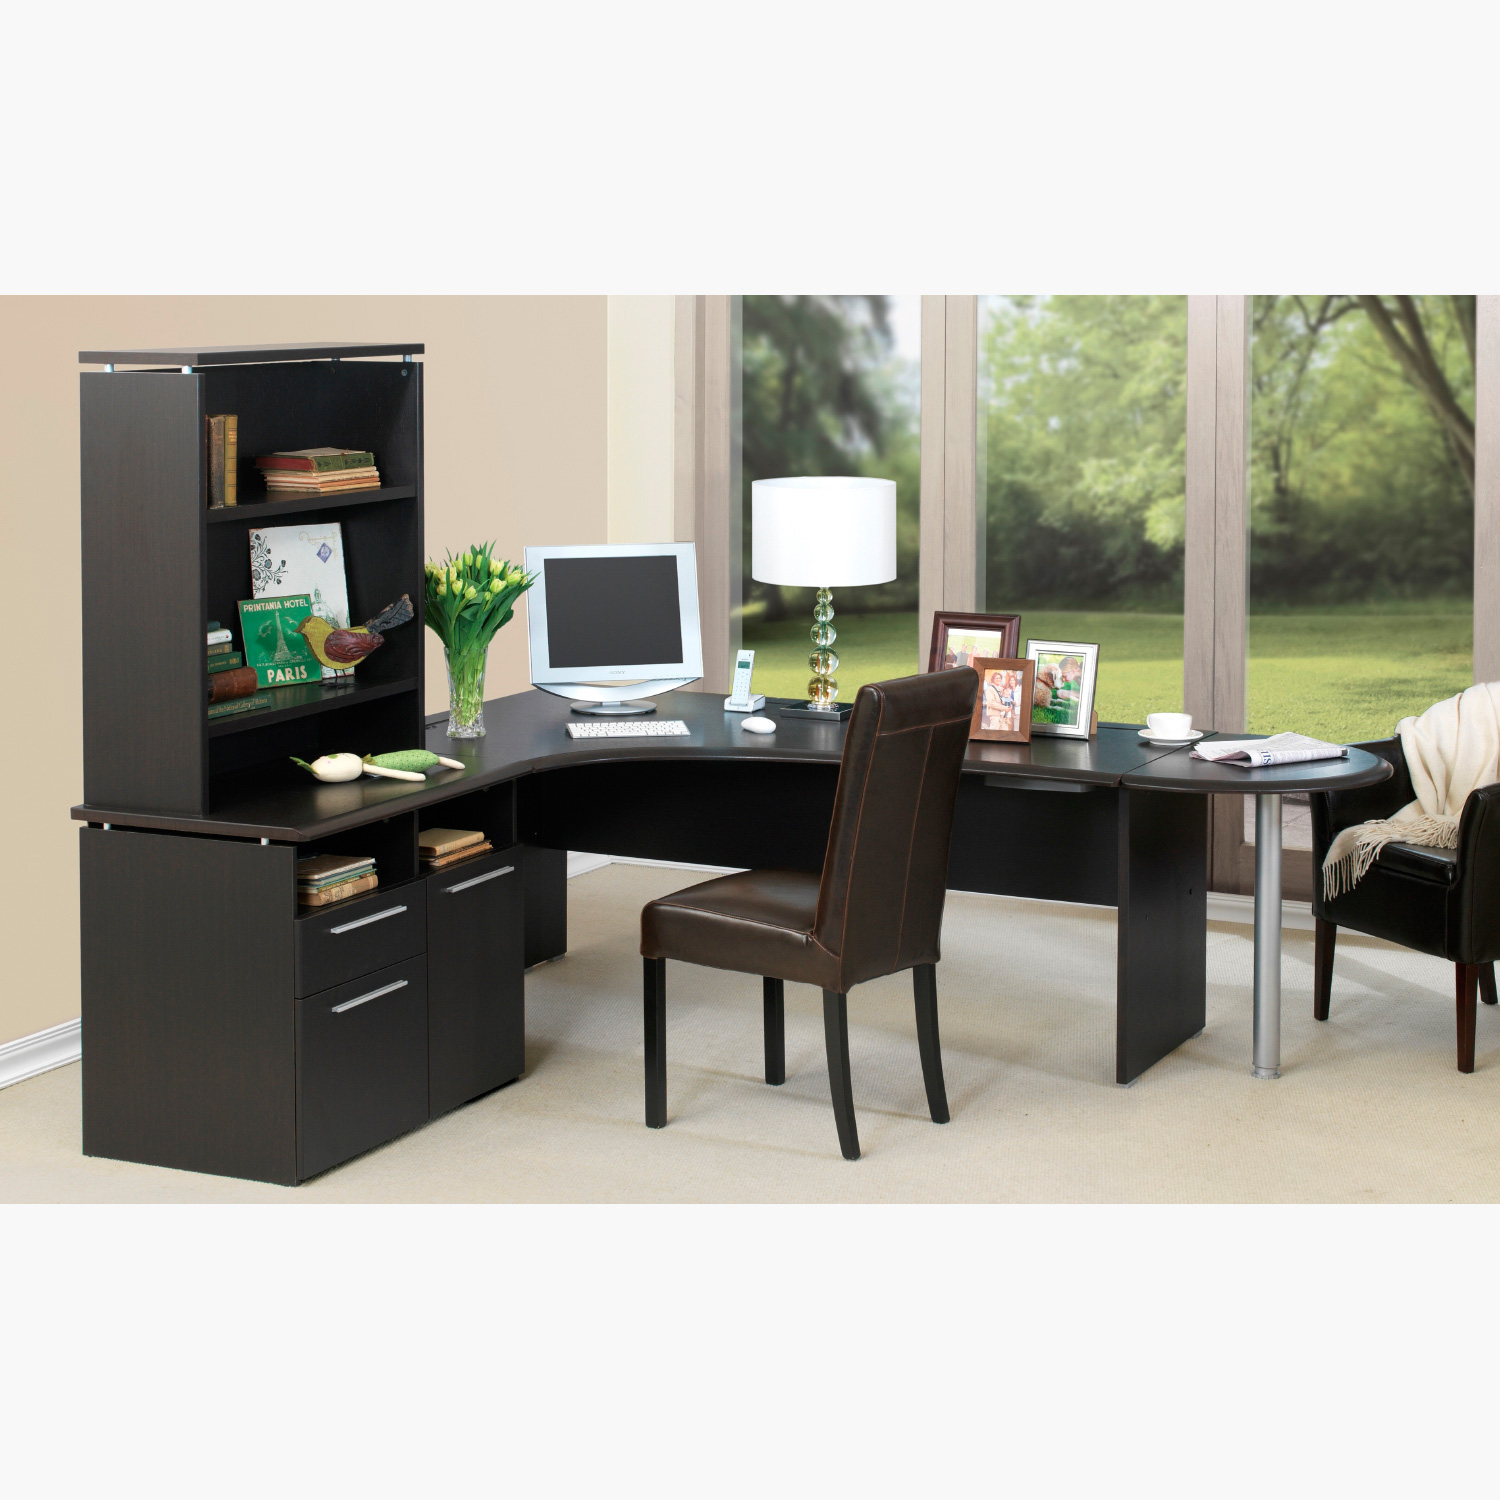 Office Furniture Australia Second Hand Office Furniture Brisbane Australia